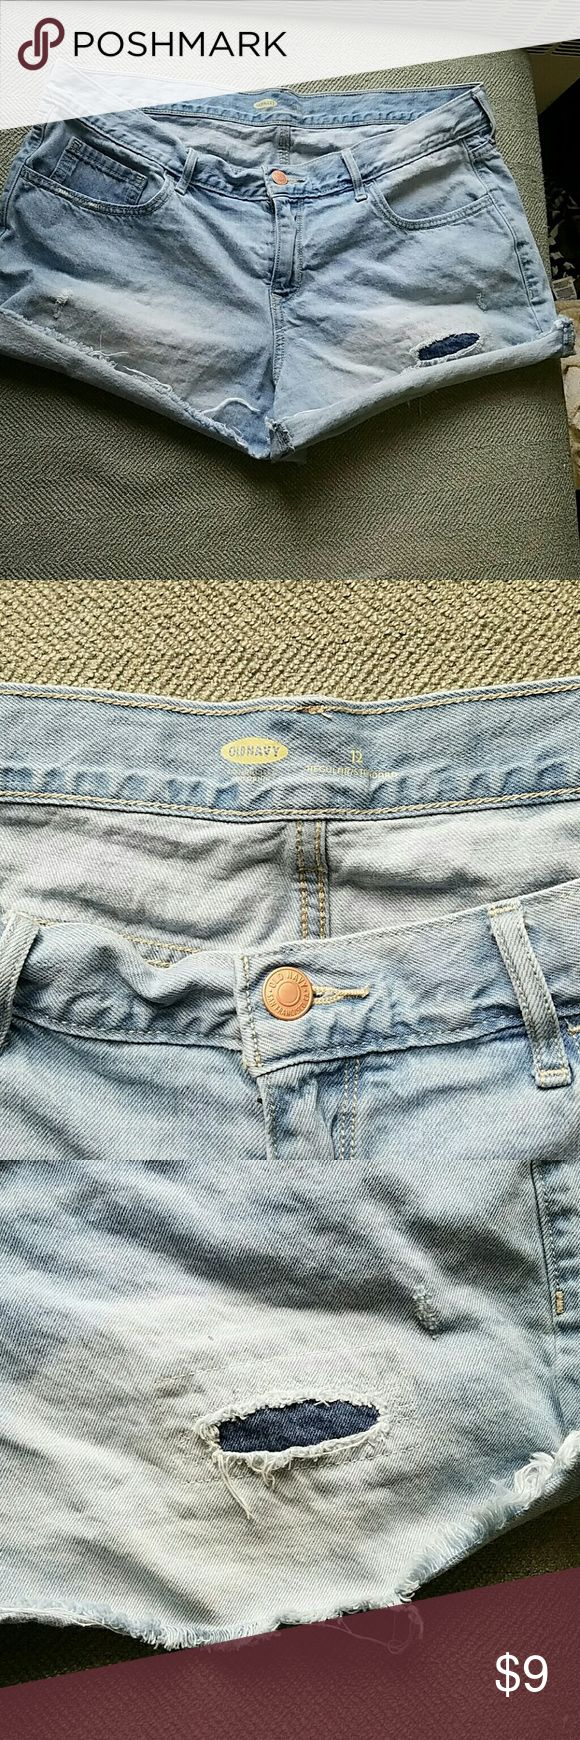 Old Navy Jean Shorts Old Navy Jean Shorts size 12, light wash with stylish fraying and tears, good condition. Please message me if you have any questions! Old Navy Shorts Jean Shorts